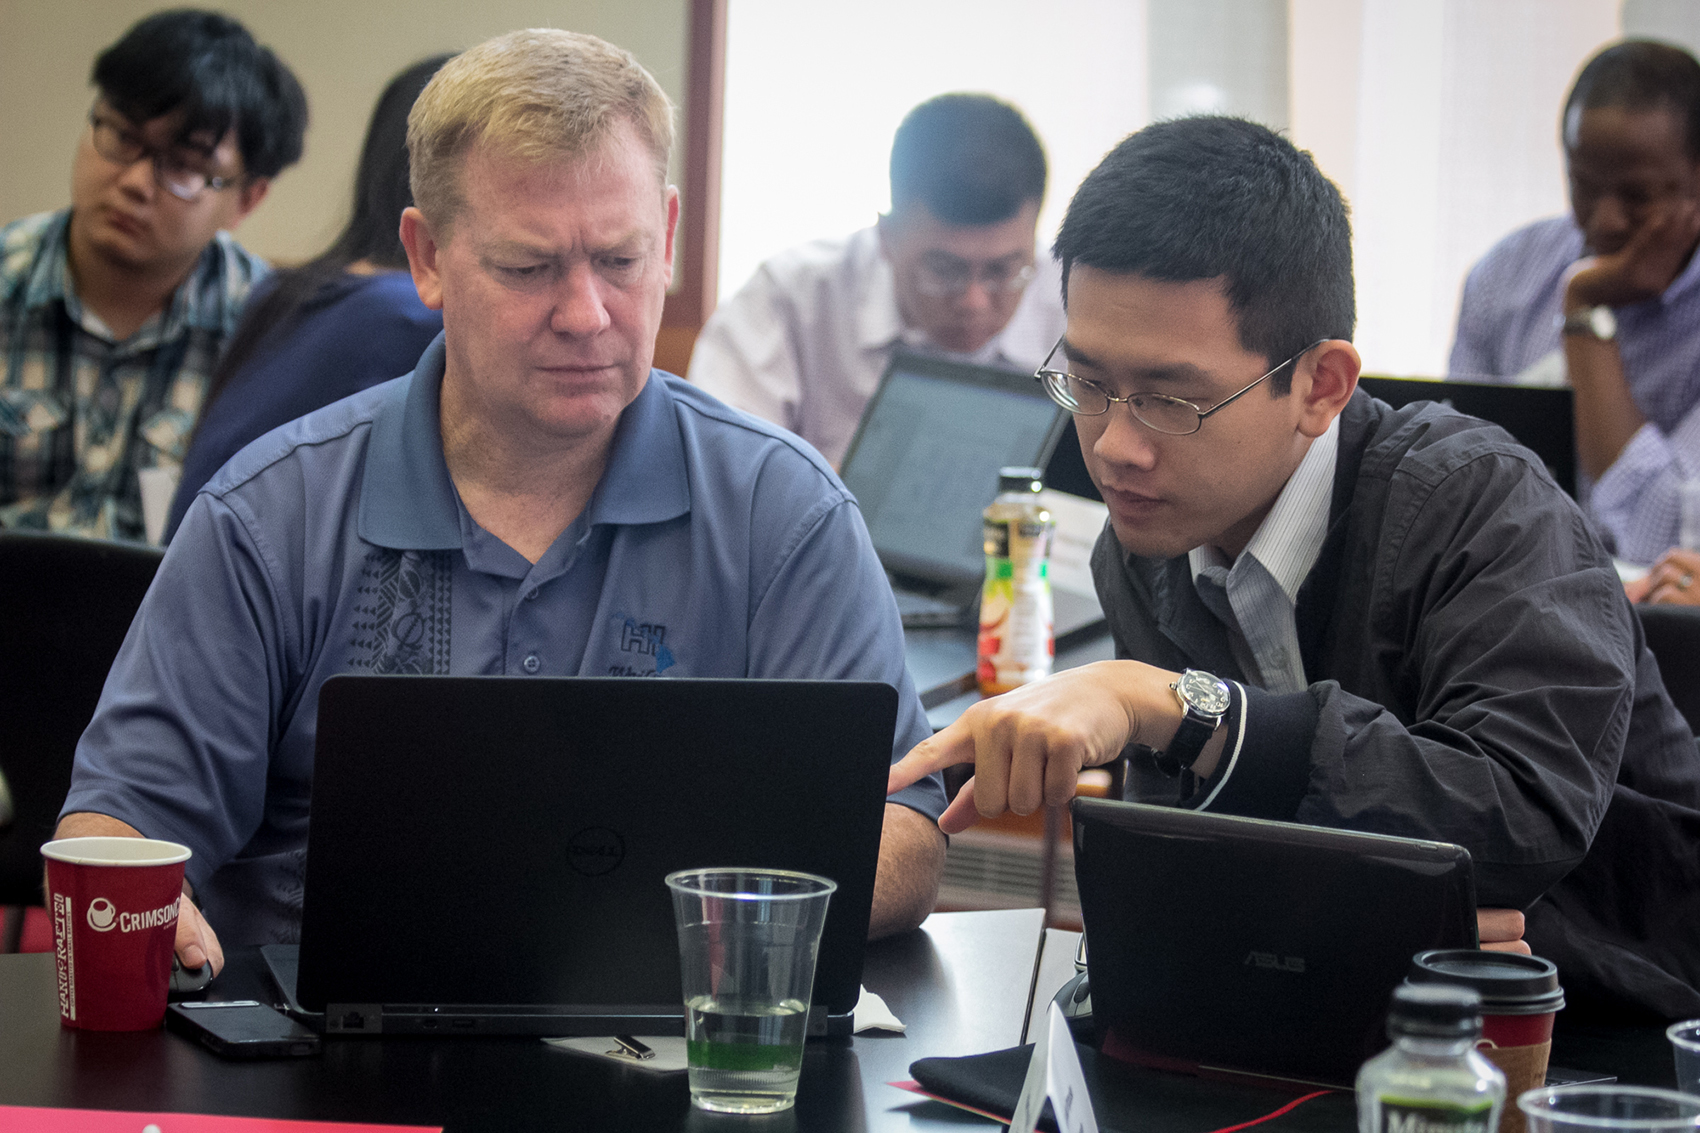 John Bair (left), a mentor of the engineering team, and Bert Liu, student lab member of the engineering team, working at the I-Corps@Ohio Program. Photo courtesy of I-Corps@Ohio.